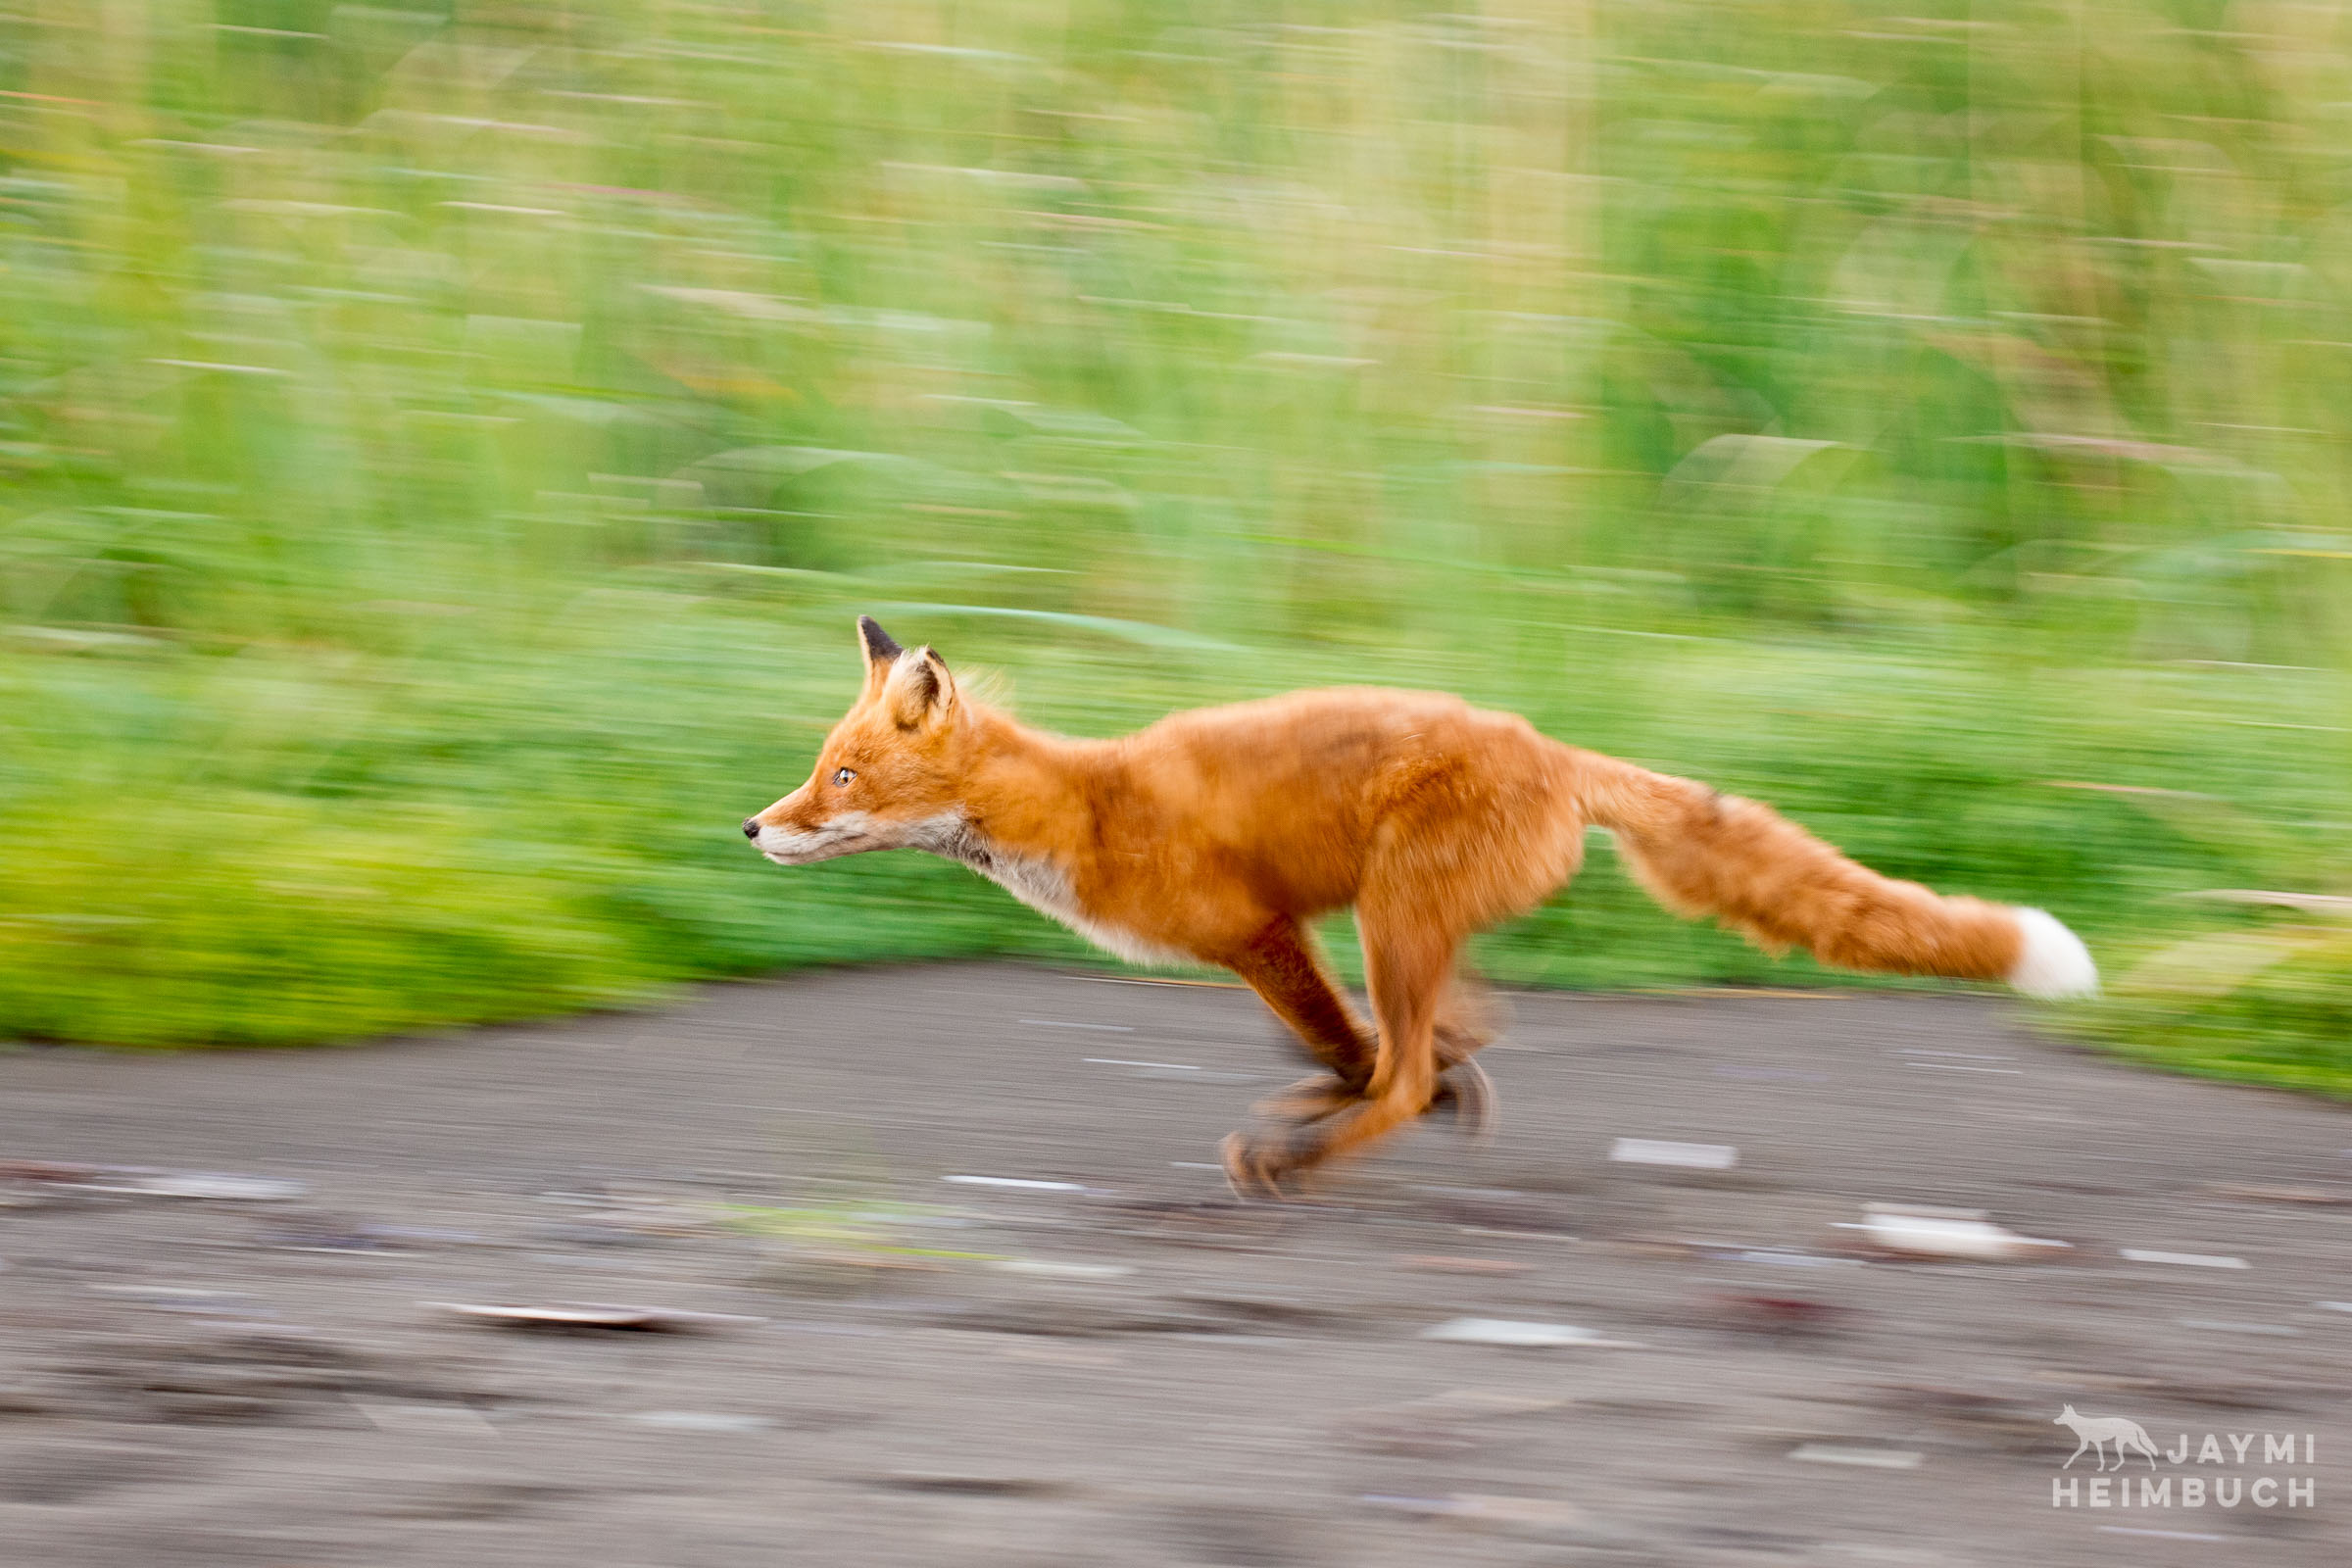 North America, USA, Alaska, Katmai. A red fox runs along the edge of a grassy field.